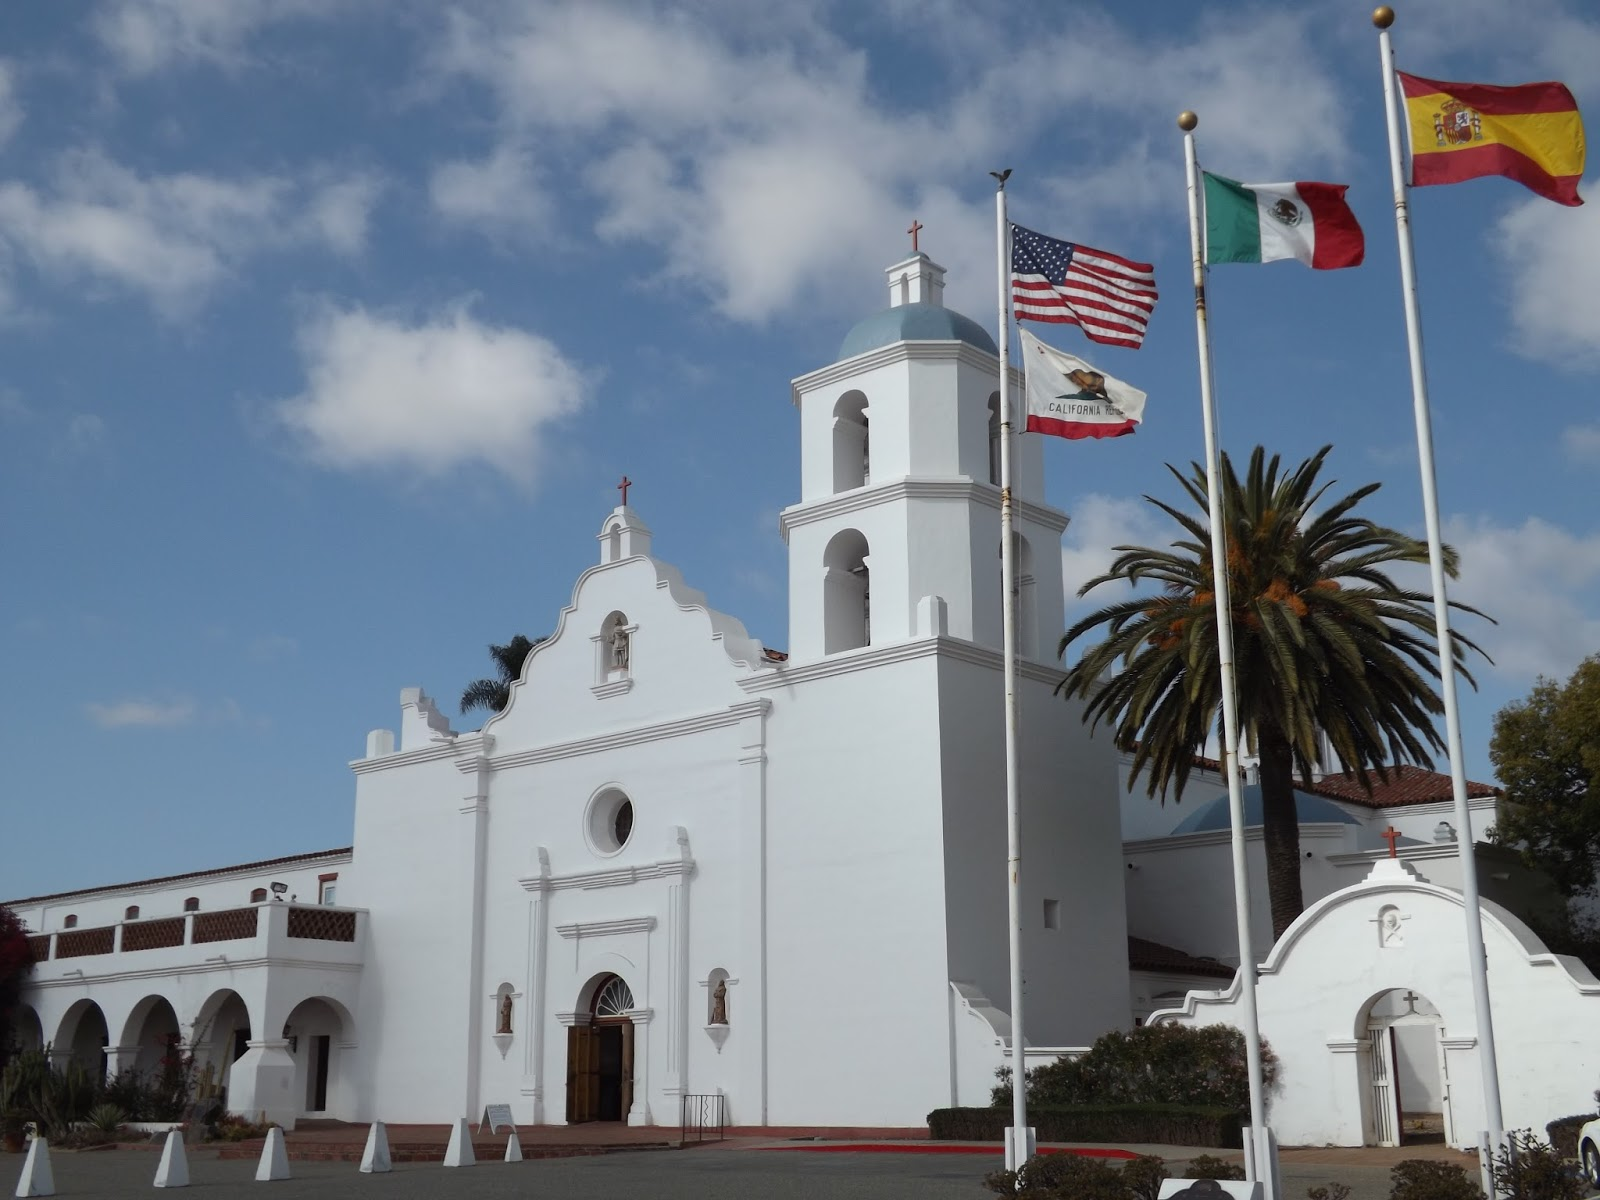 san luis rey buddhist single women Explore the beautiful lahaina jodo mission and its beautiful buddhist temple and buddha,  quick guide to mission san luis rey de francia for visitors and students.